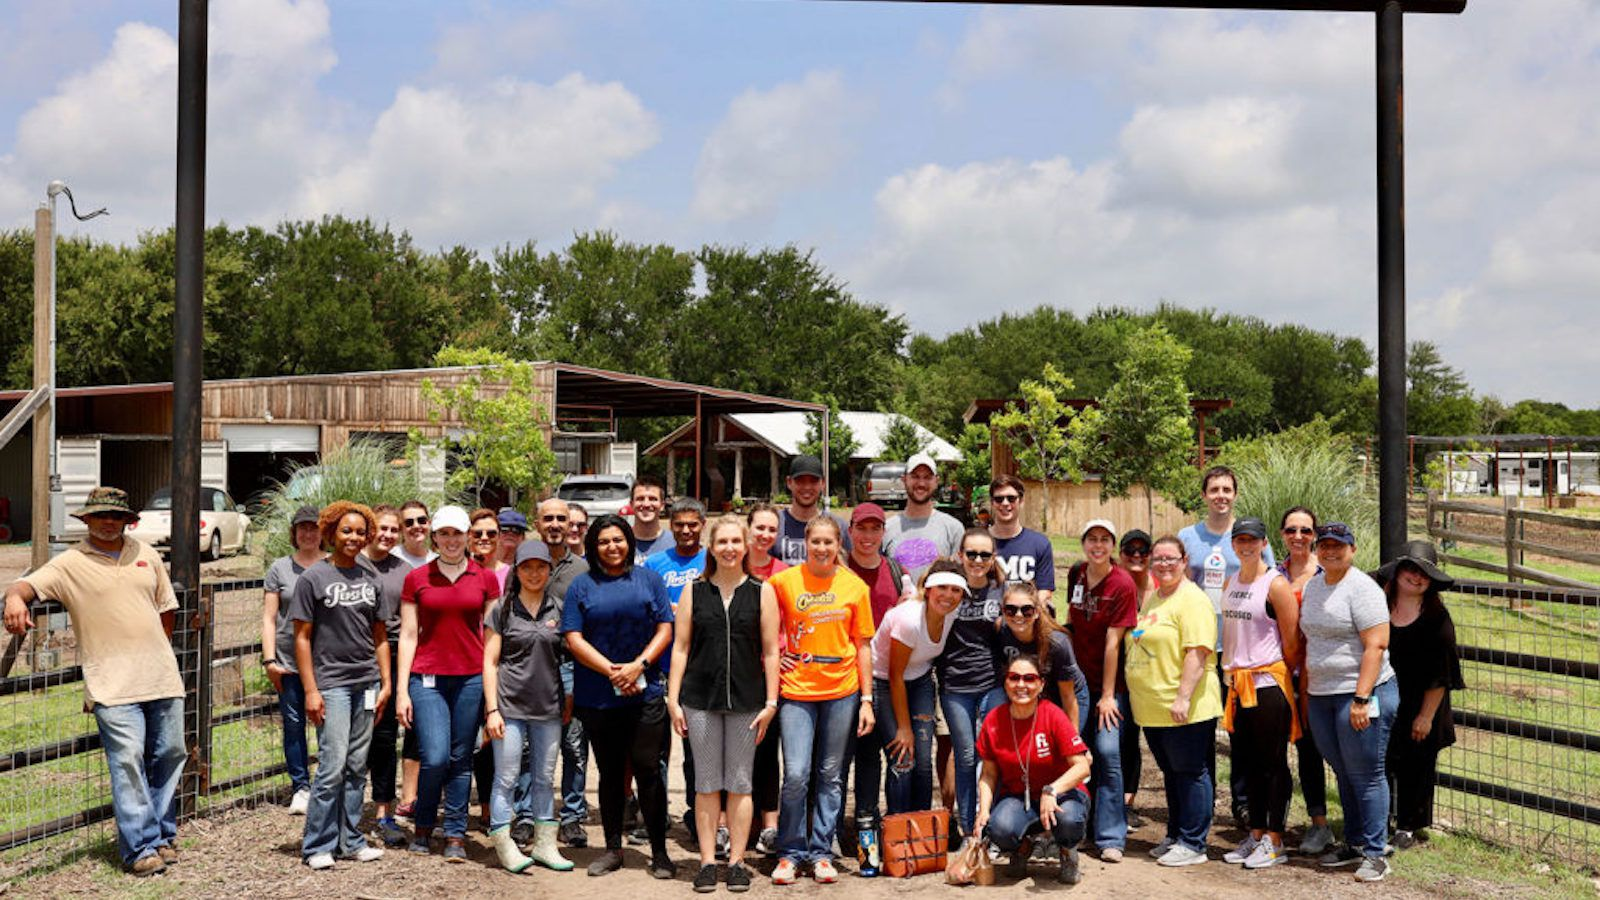 Frito-Lay employees recently visited Bonton Farms to take part in planting, gardening and other vital work at the farm as part of its Southern Dallas Thrives initiative.